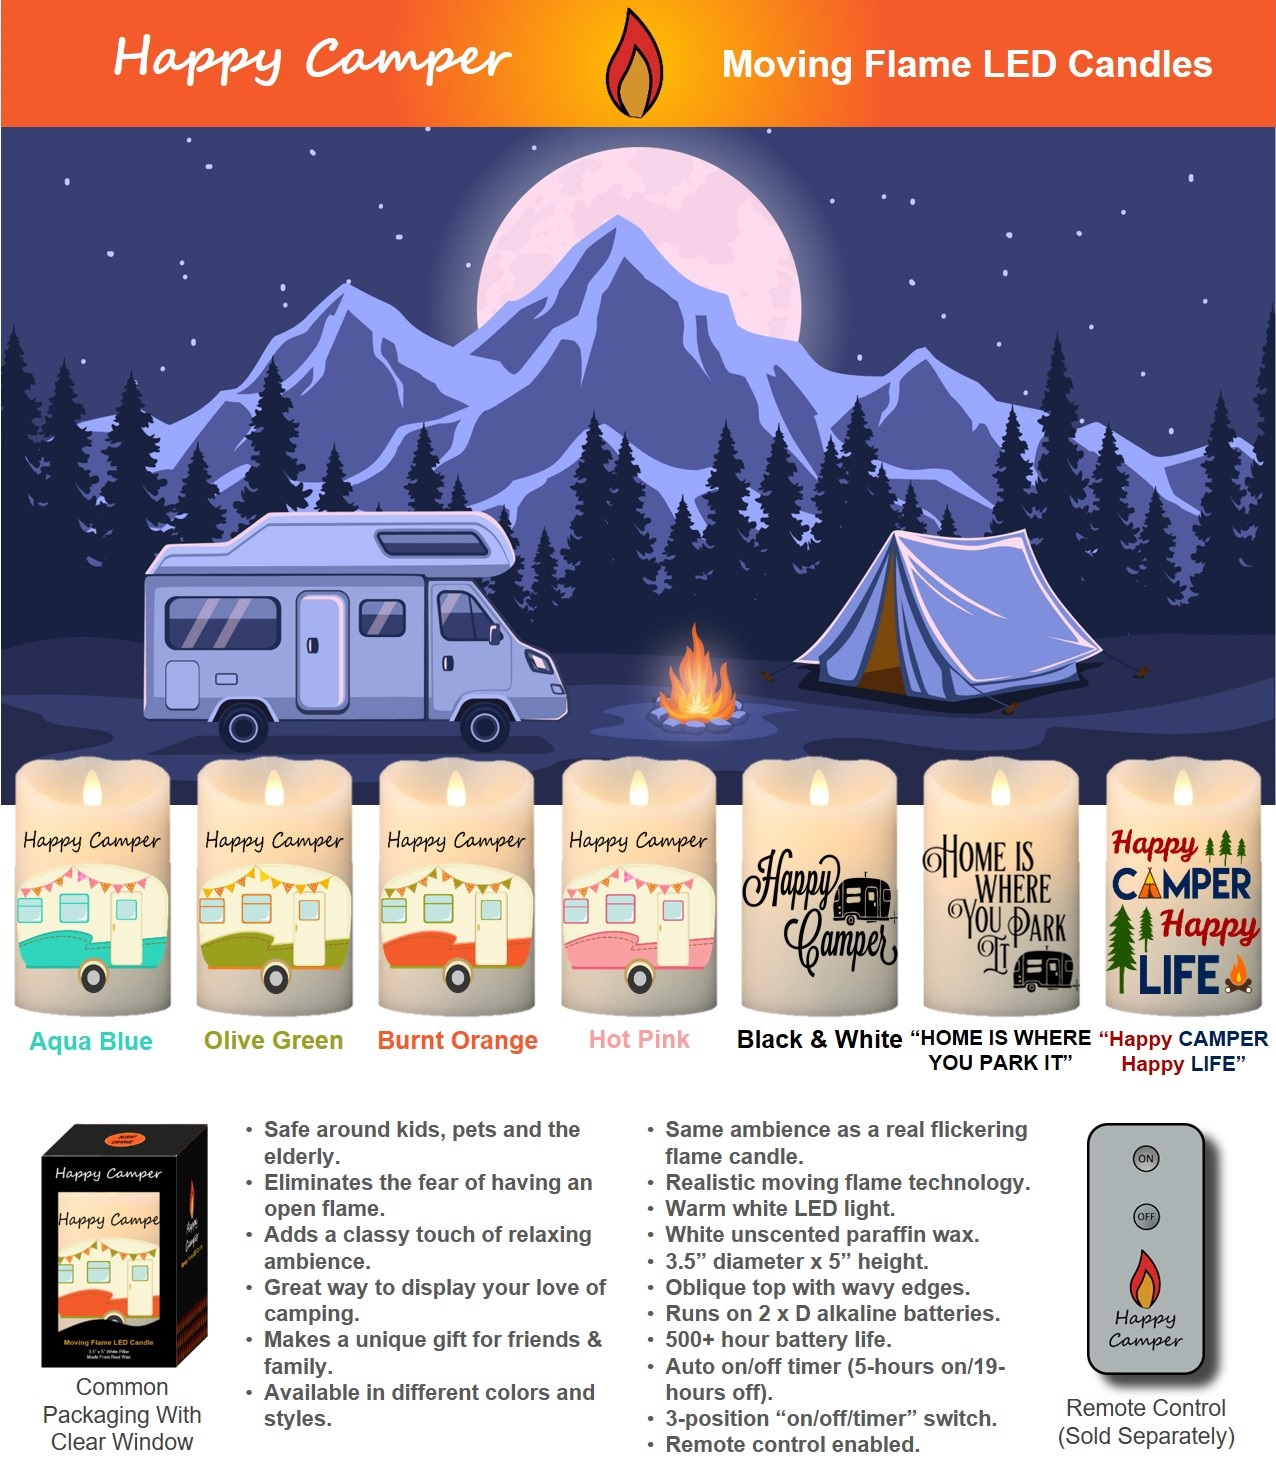 """Happy Camper"" Moving Flame LED Candles Flyer"